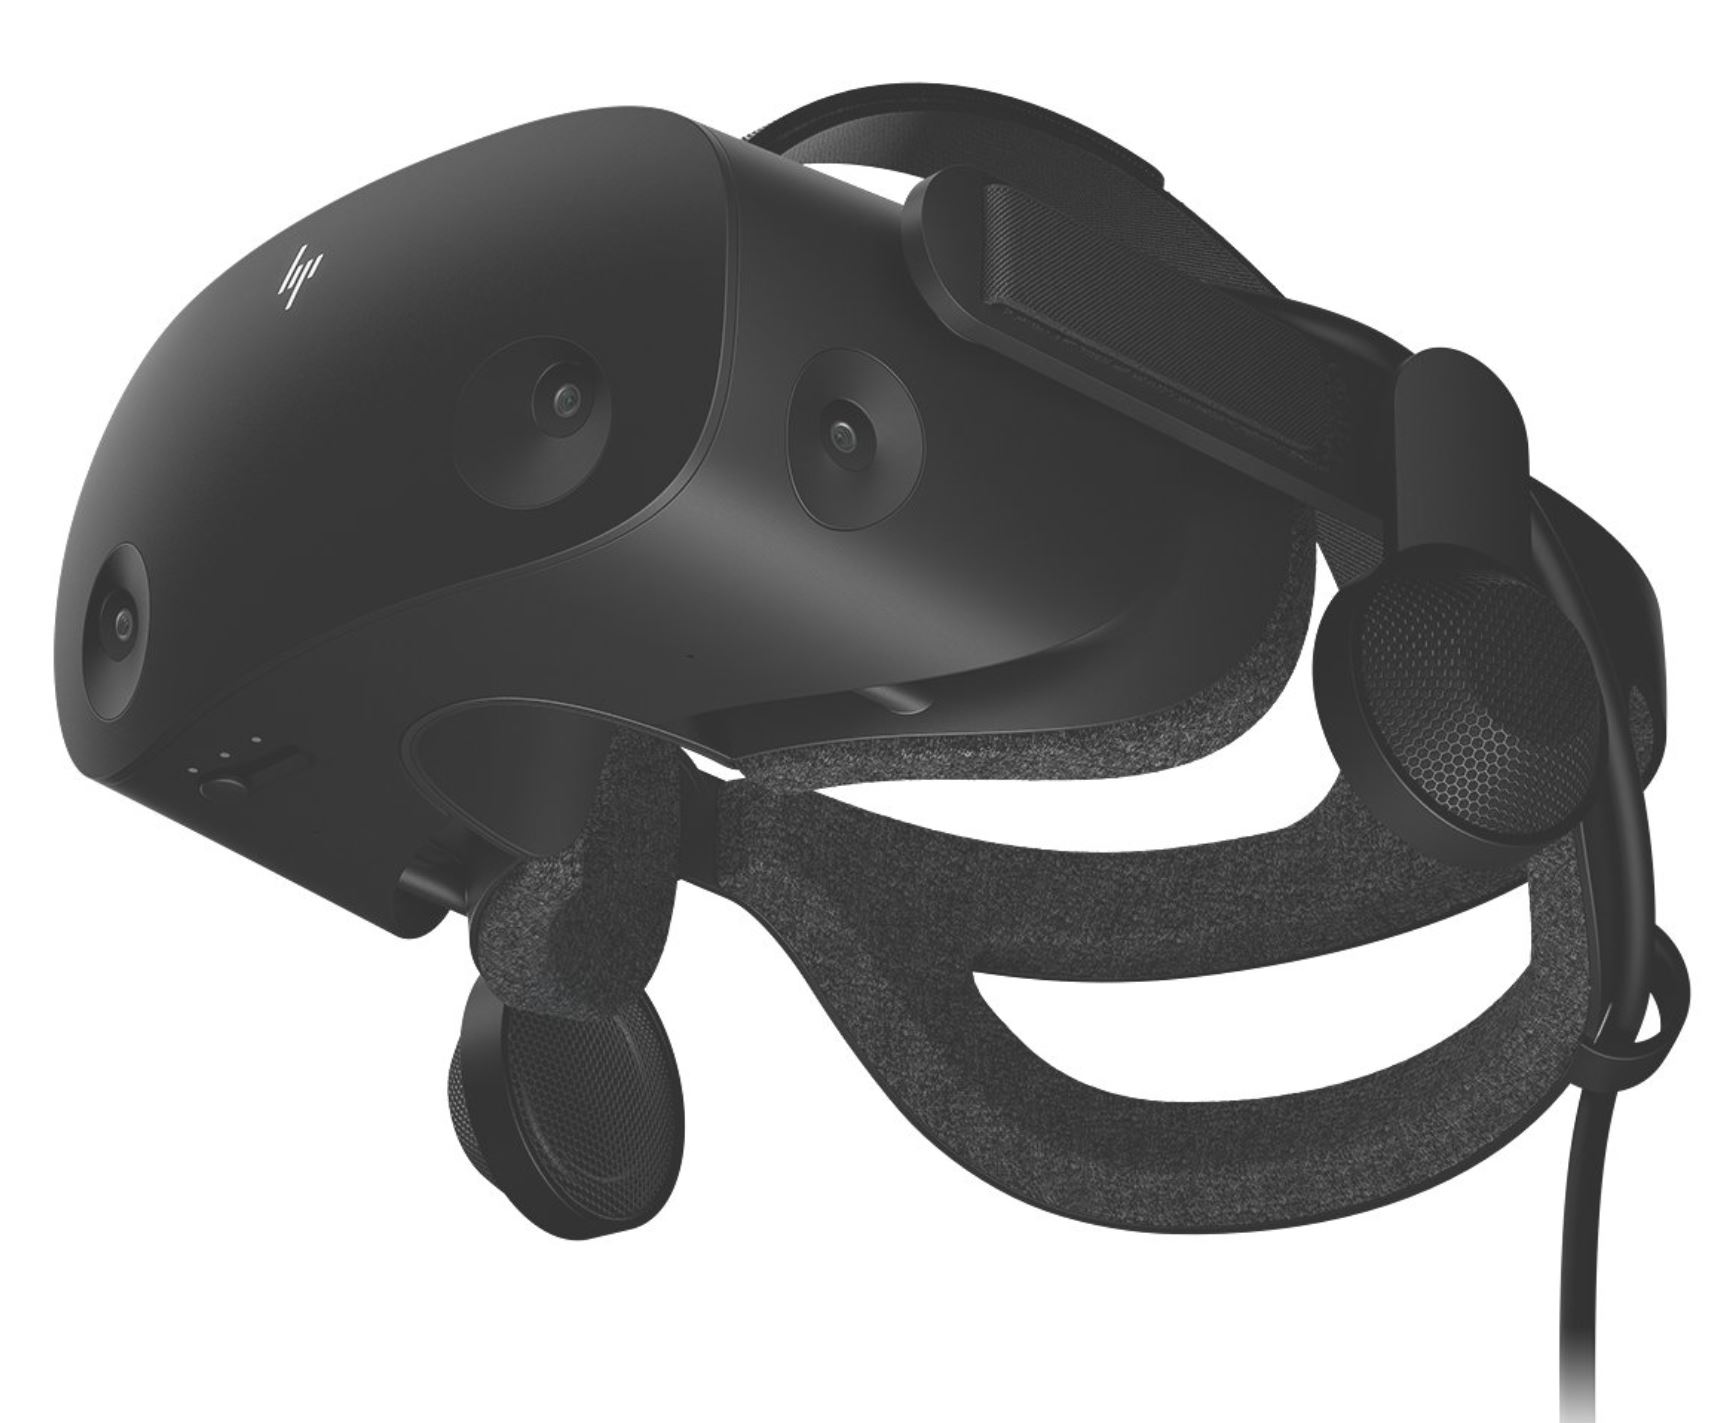 This is the next gen HP VR headset developed in